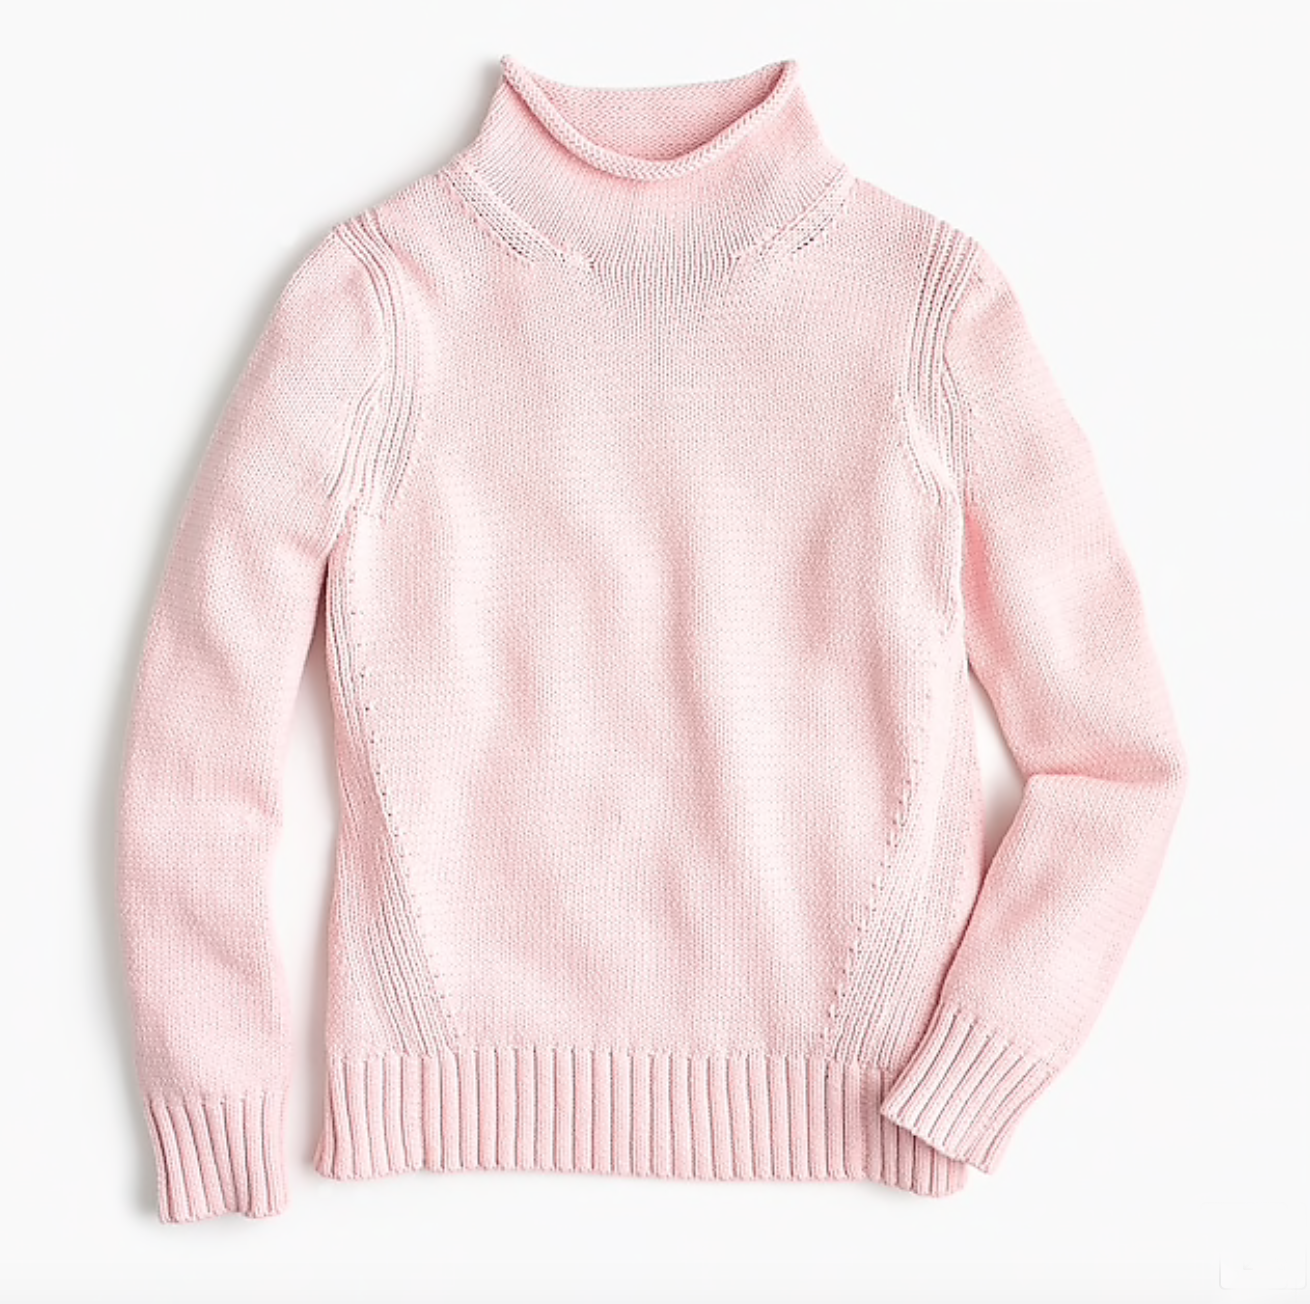 1988 Rollneck Sweater